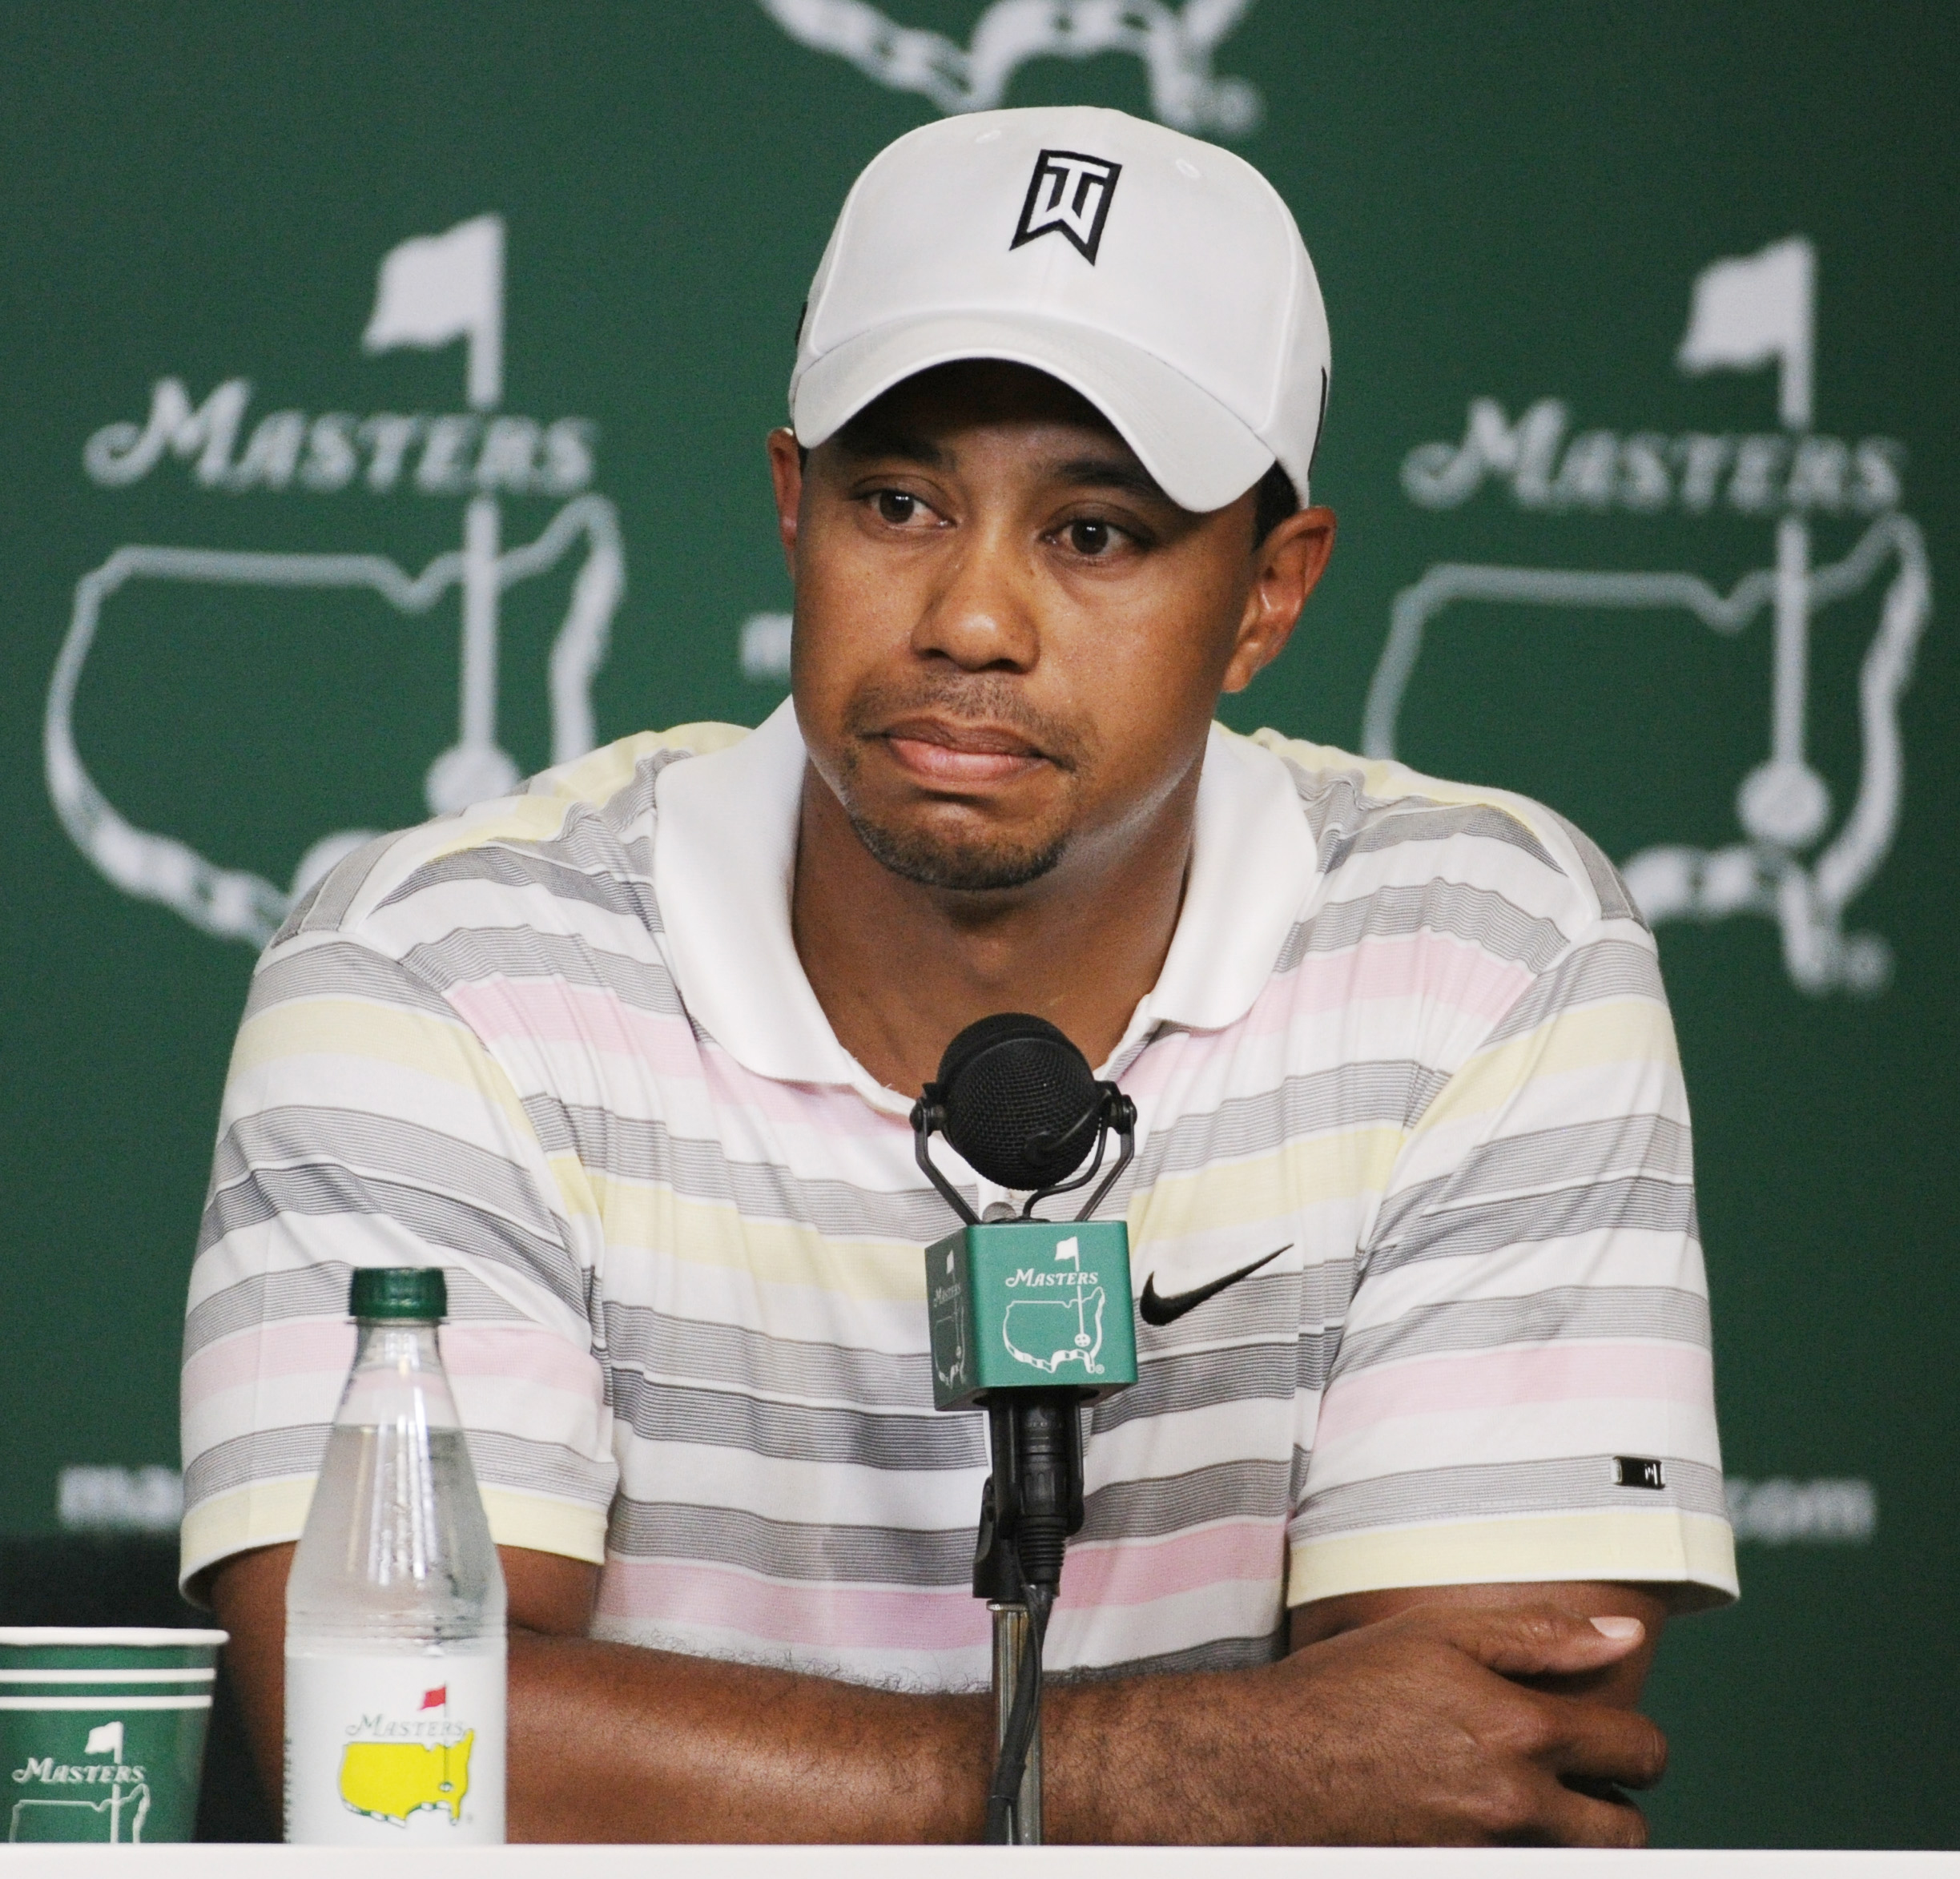 Tiger Woods answered questions in a press conference Monday for the first time since his Thanksgiving night accident that led to revelations of multiple extramarital affairs.